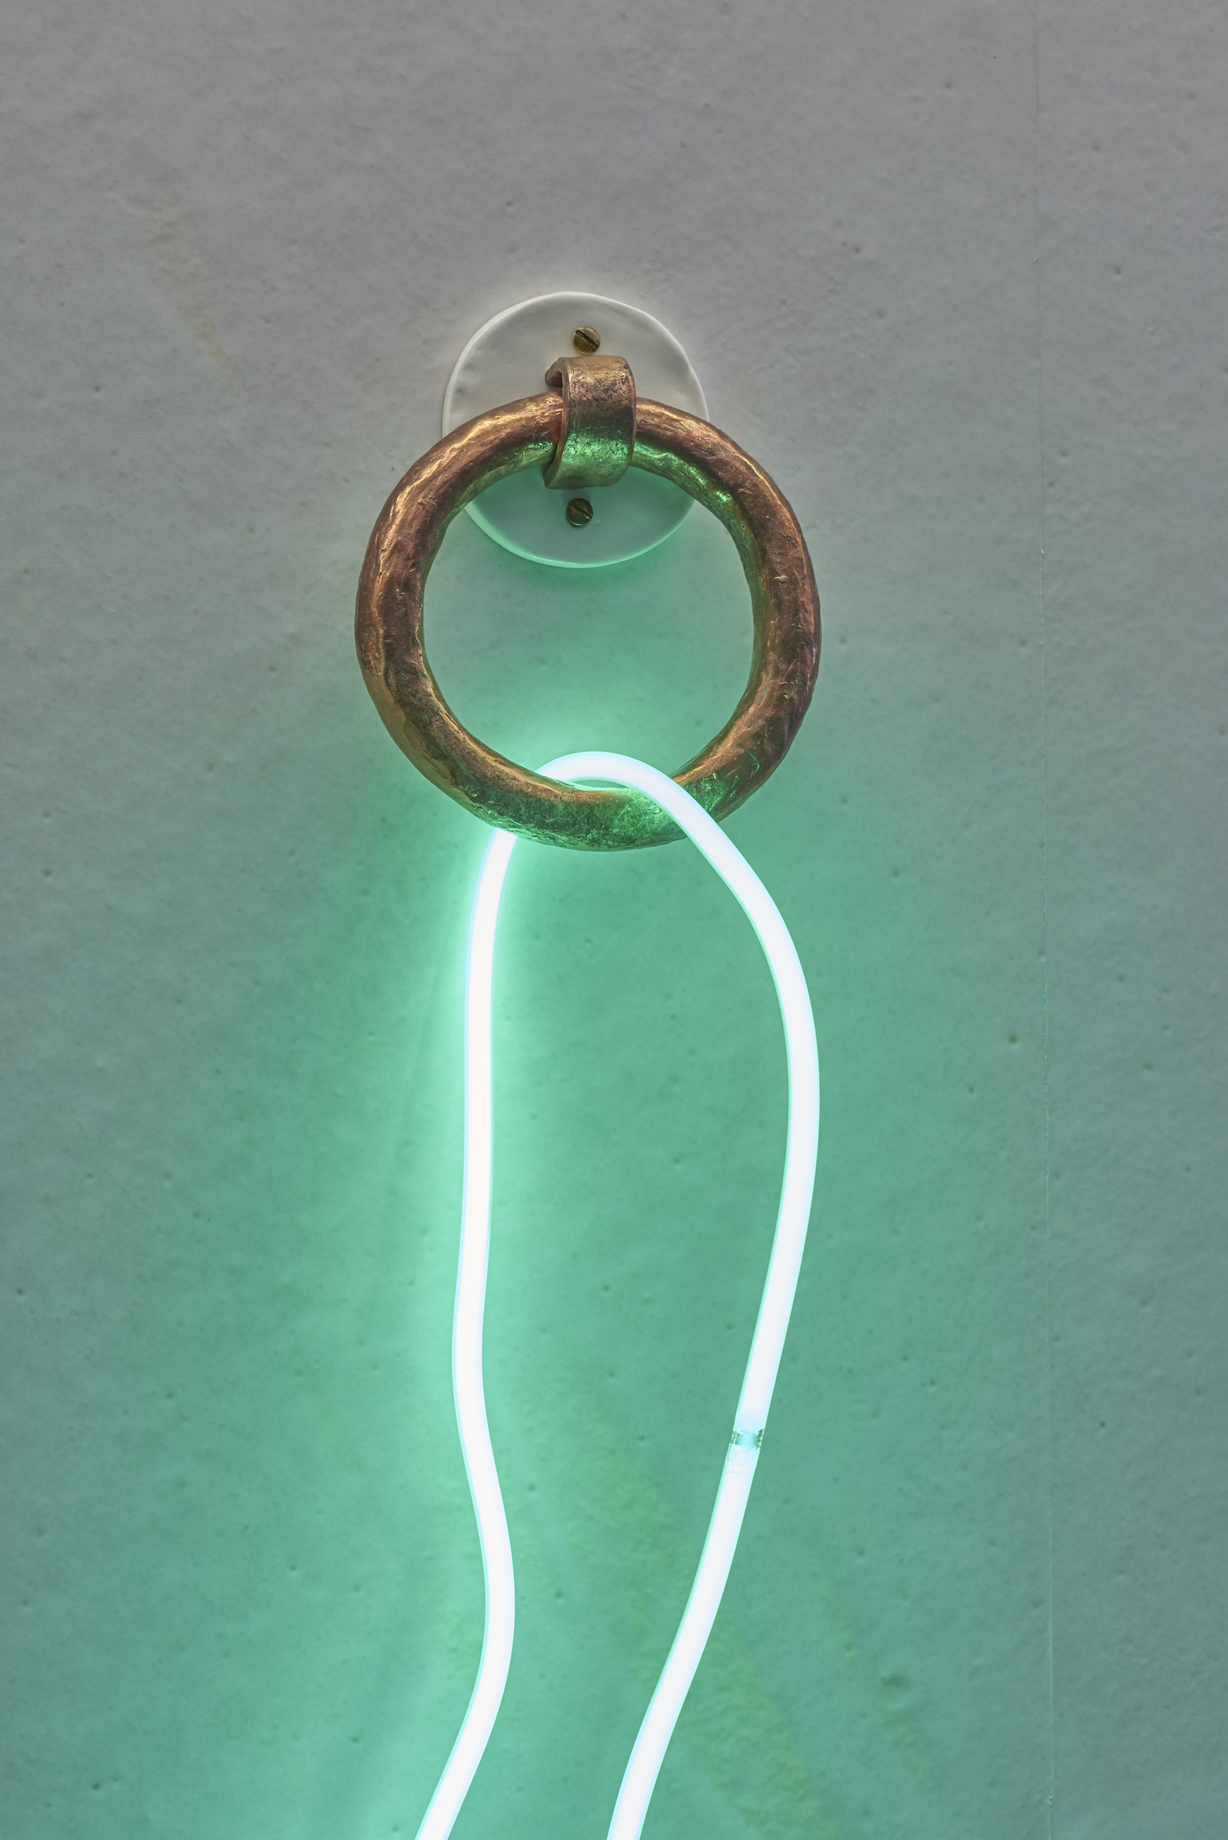 Clare Kenny, Enough rope to hang 'emselves (green), 2016. Neon, bronze, wood, acrystal, paint. 143 x 24 x 19 cm